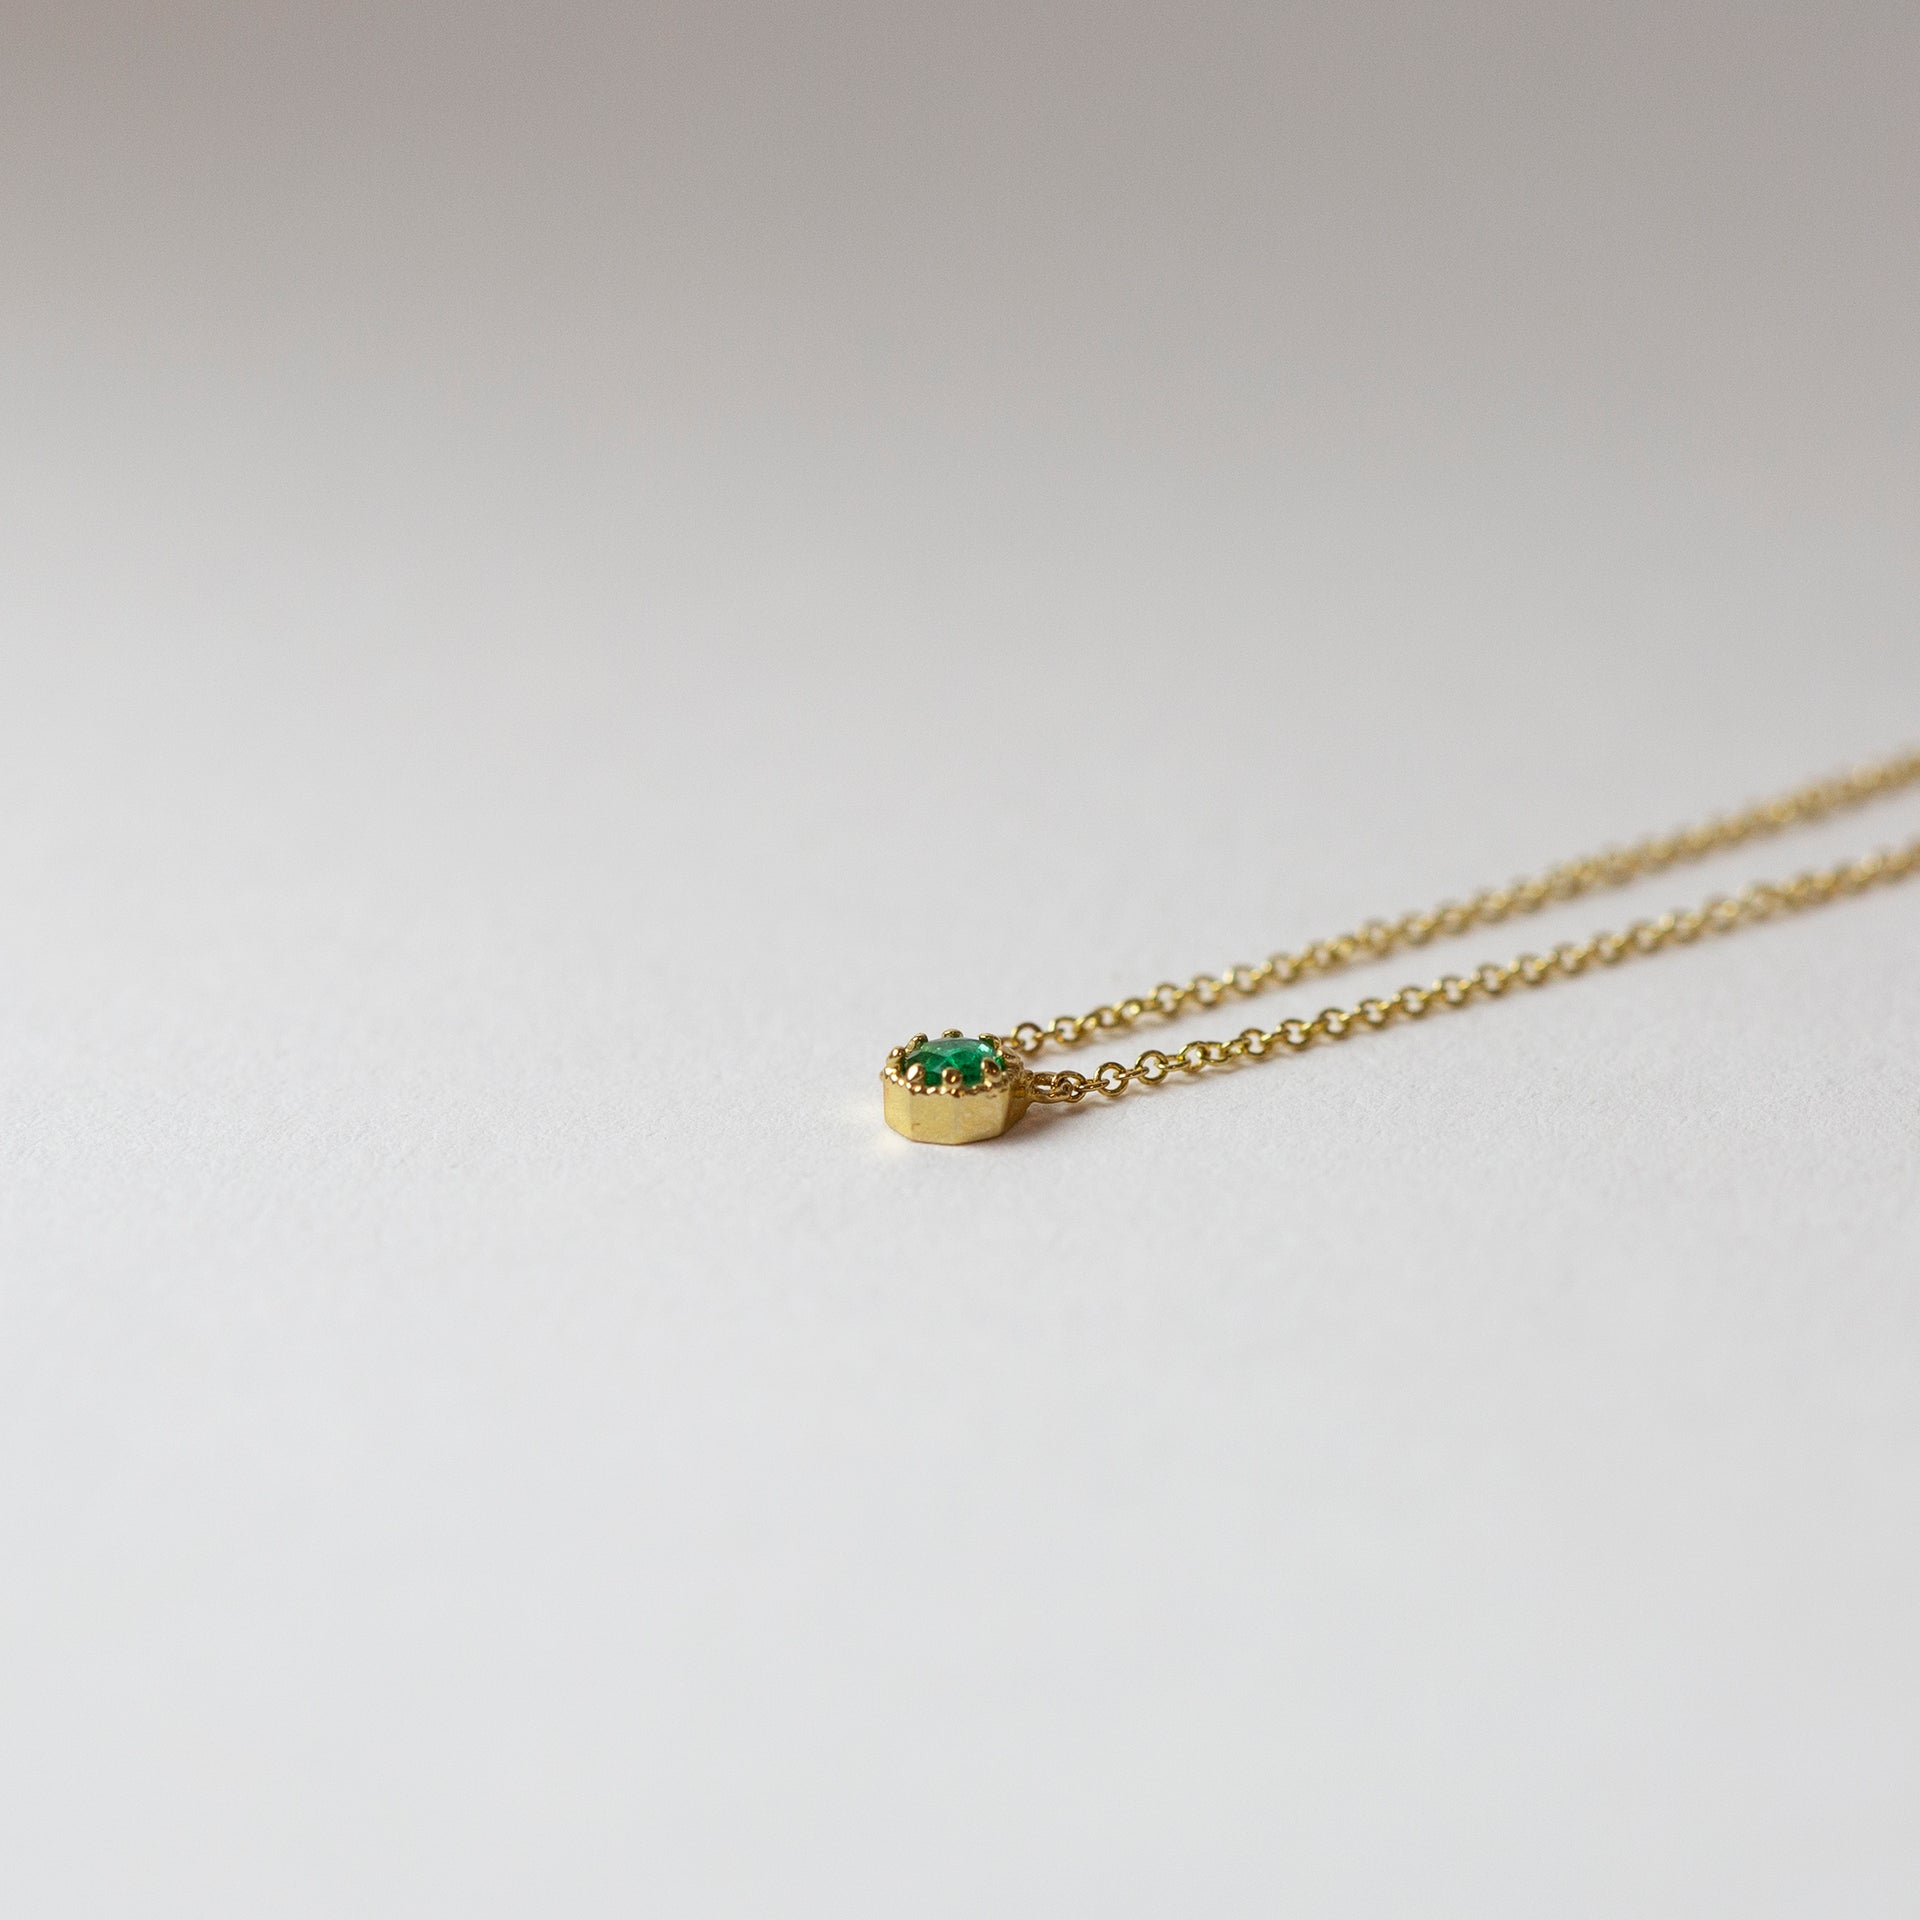 Petite Crown Bezel Emerald Necklace